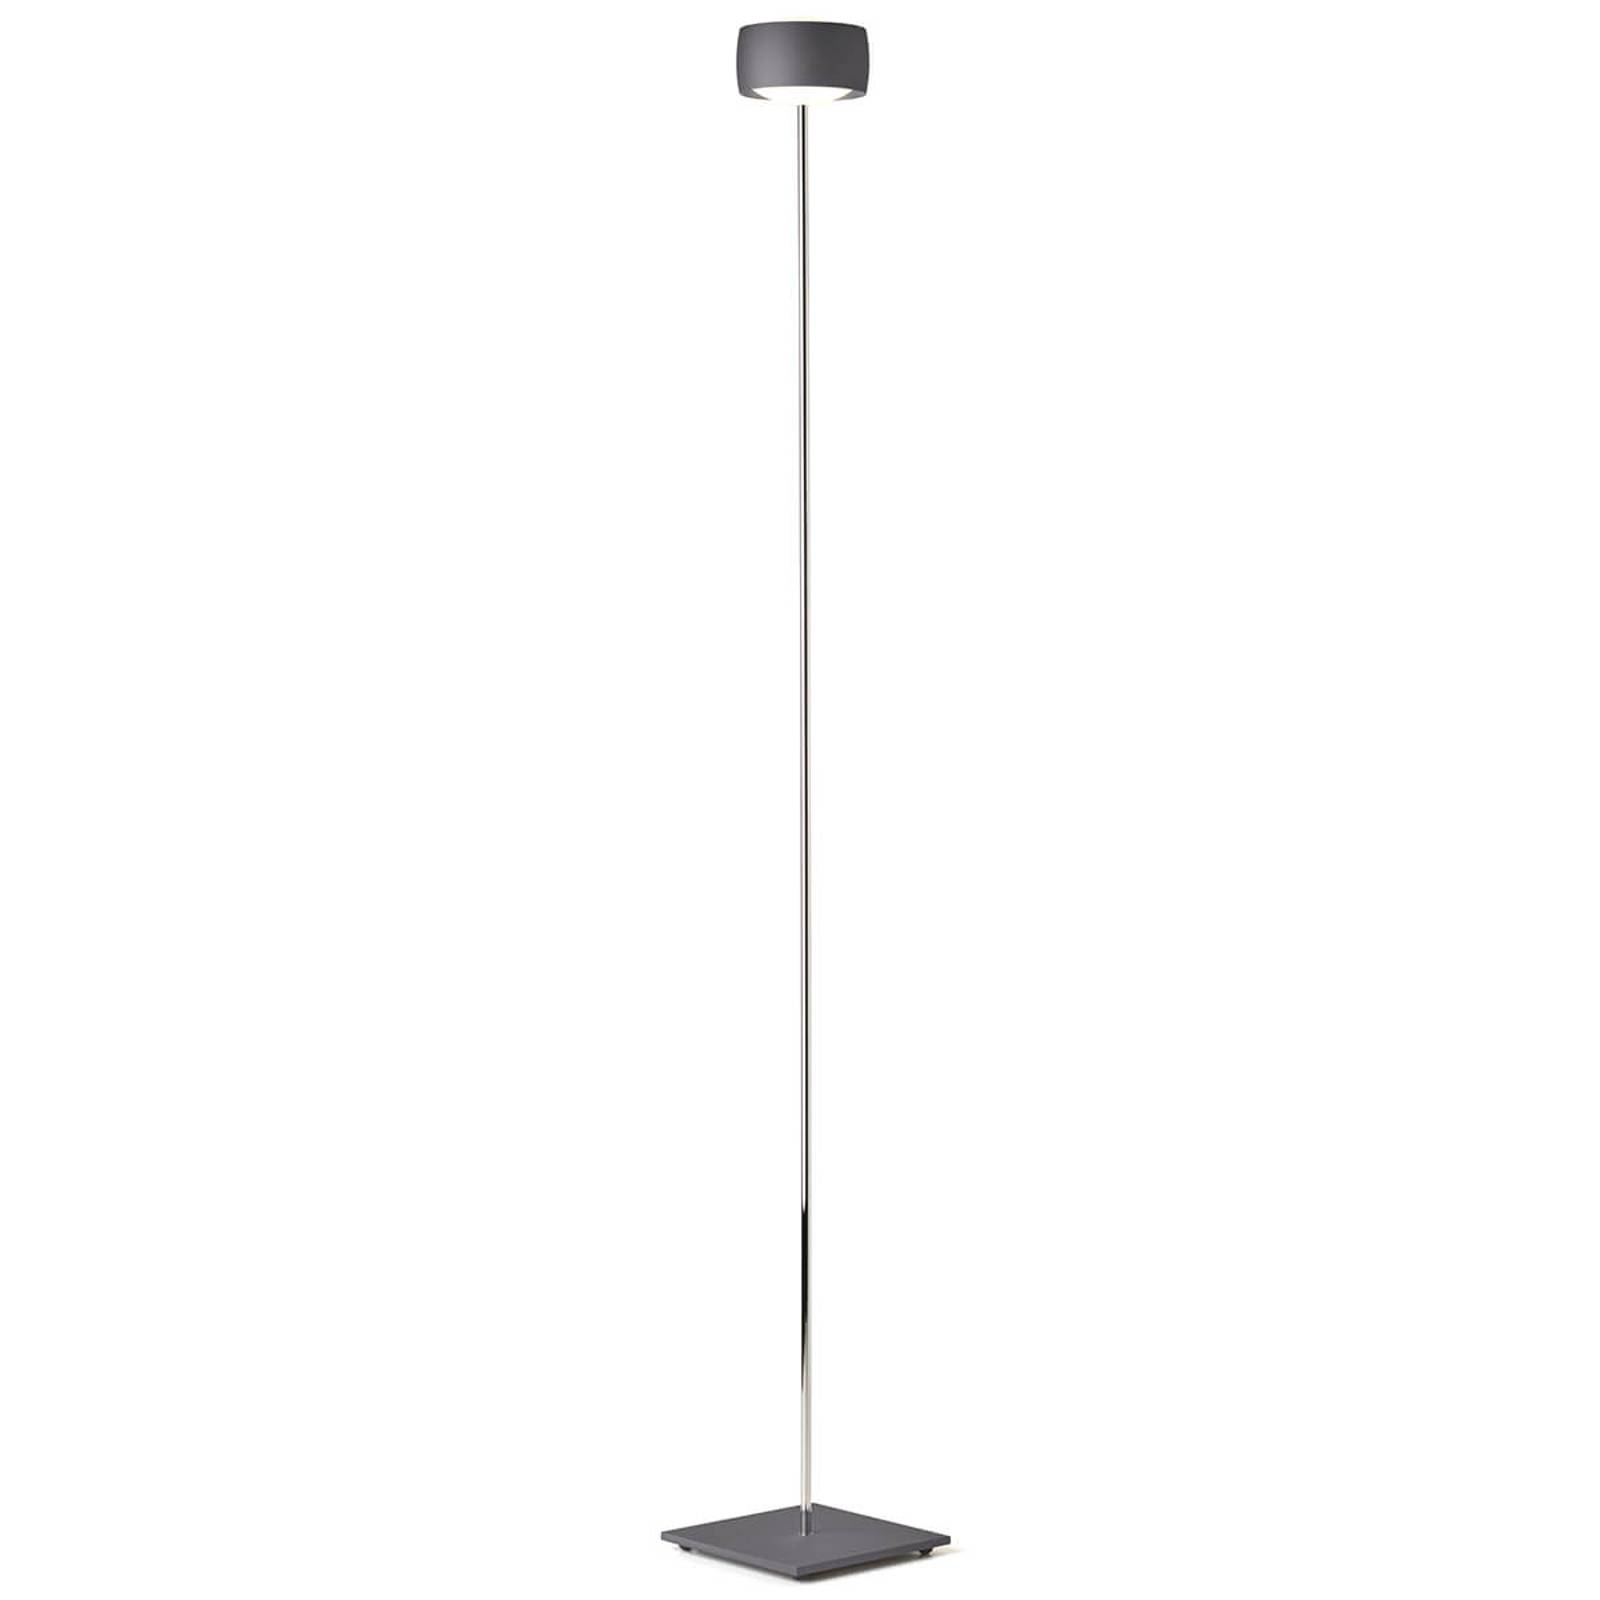 LED floor lamp Grace with gesture control, grey from Oligo